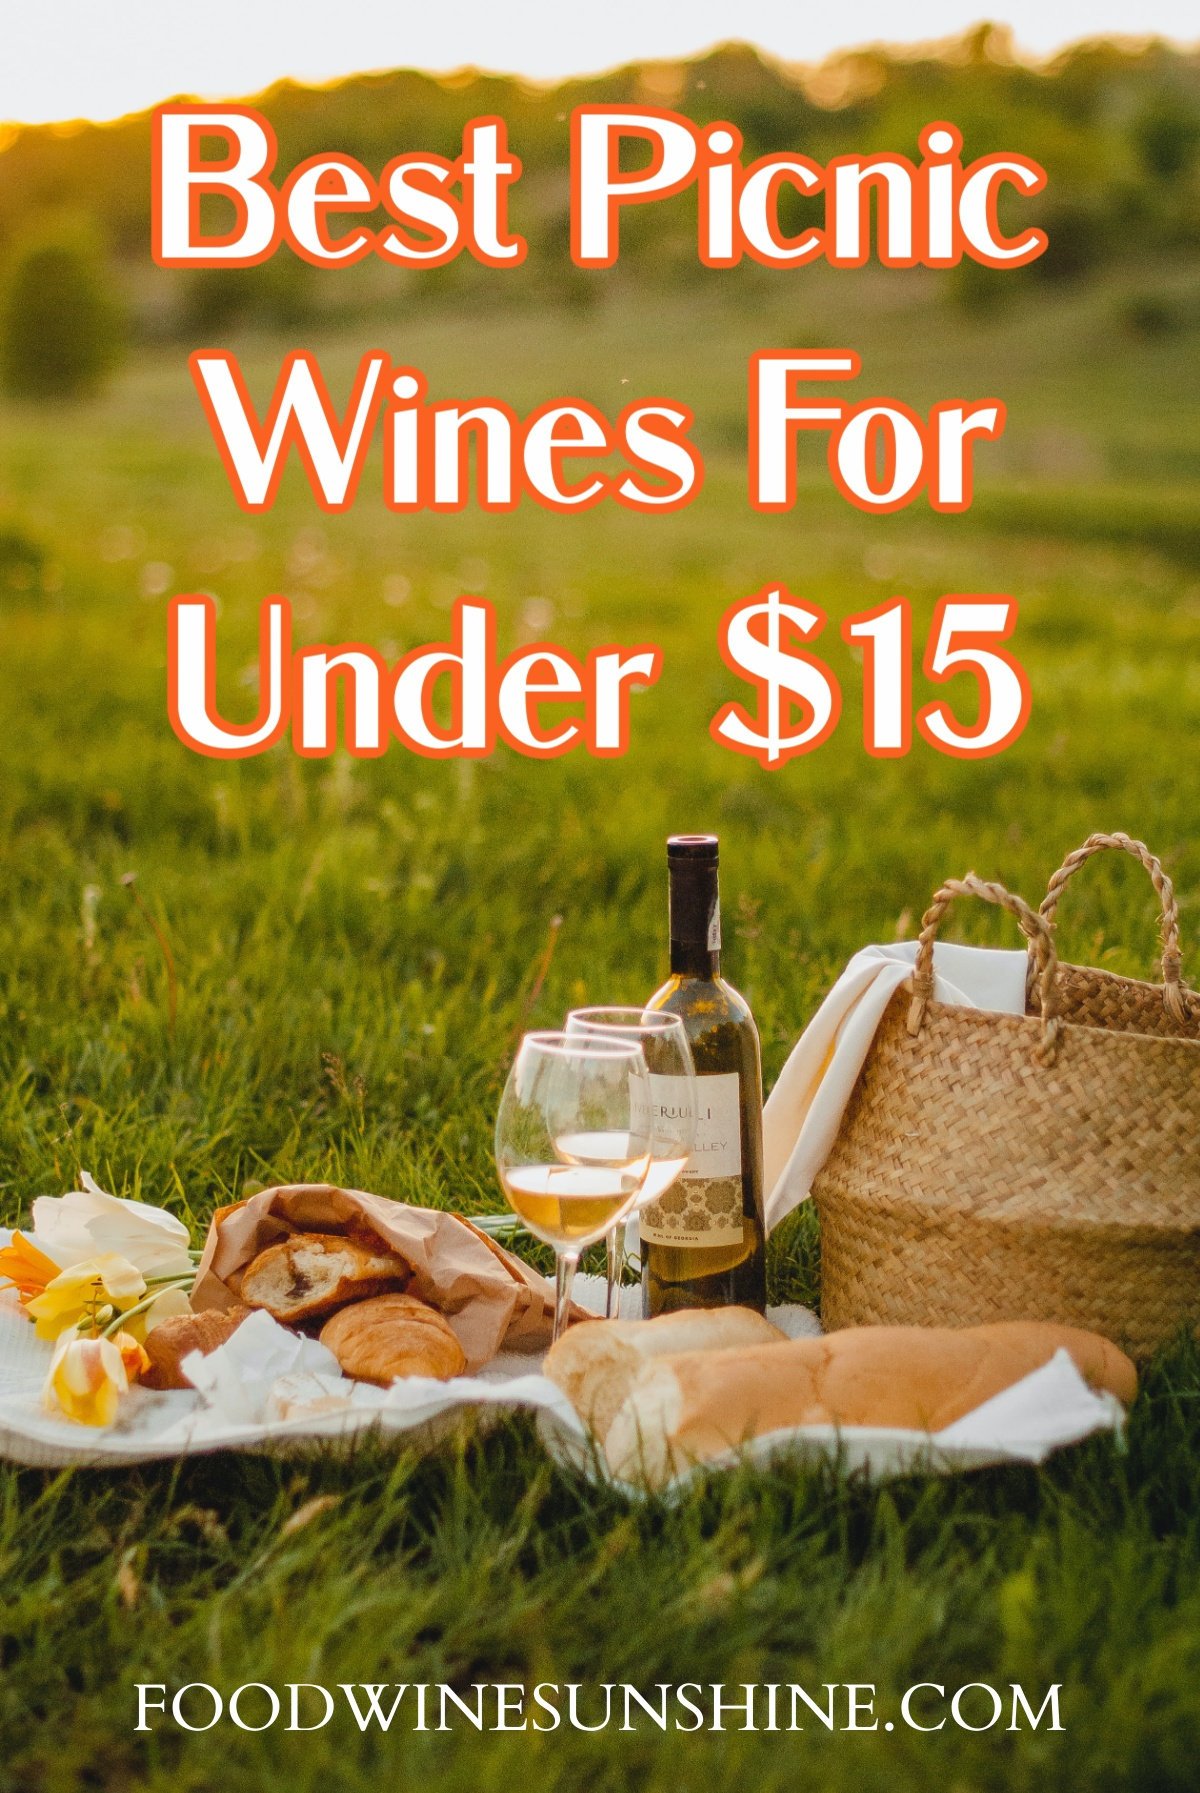 Best Picnic Wines For Under $15